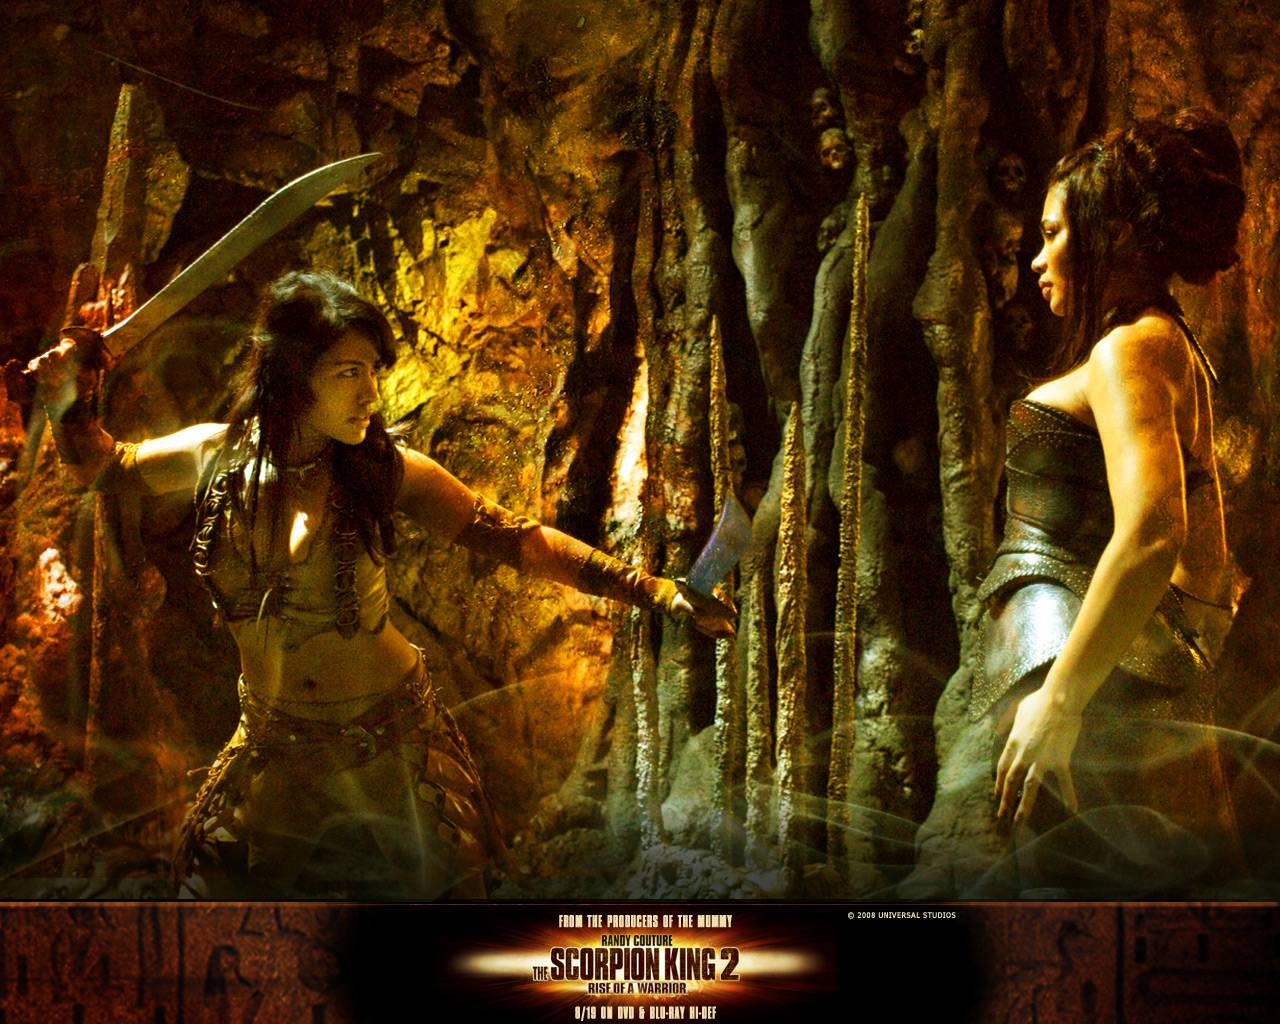 The scorpion king 2 rise of a warrior posters 2008